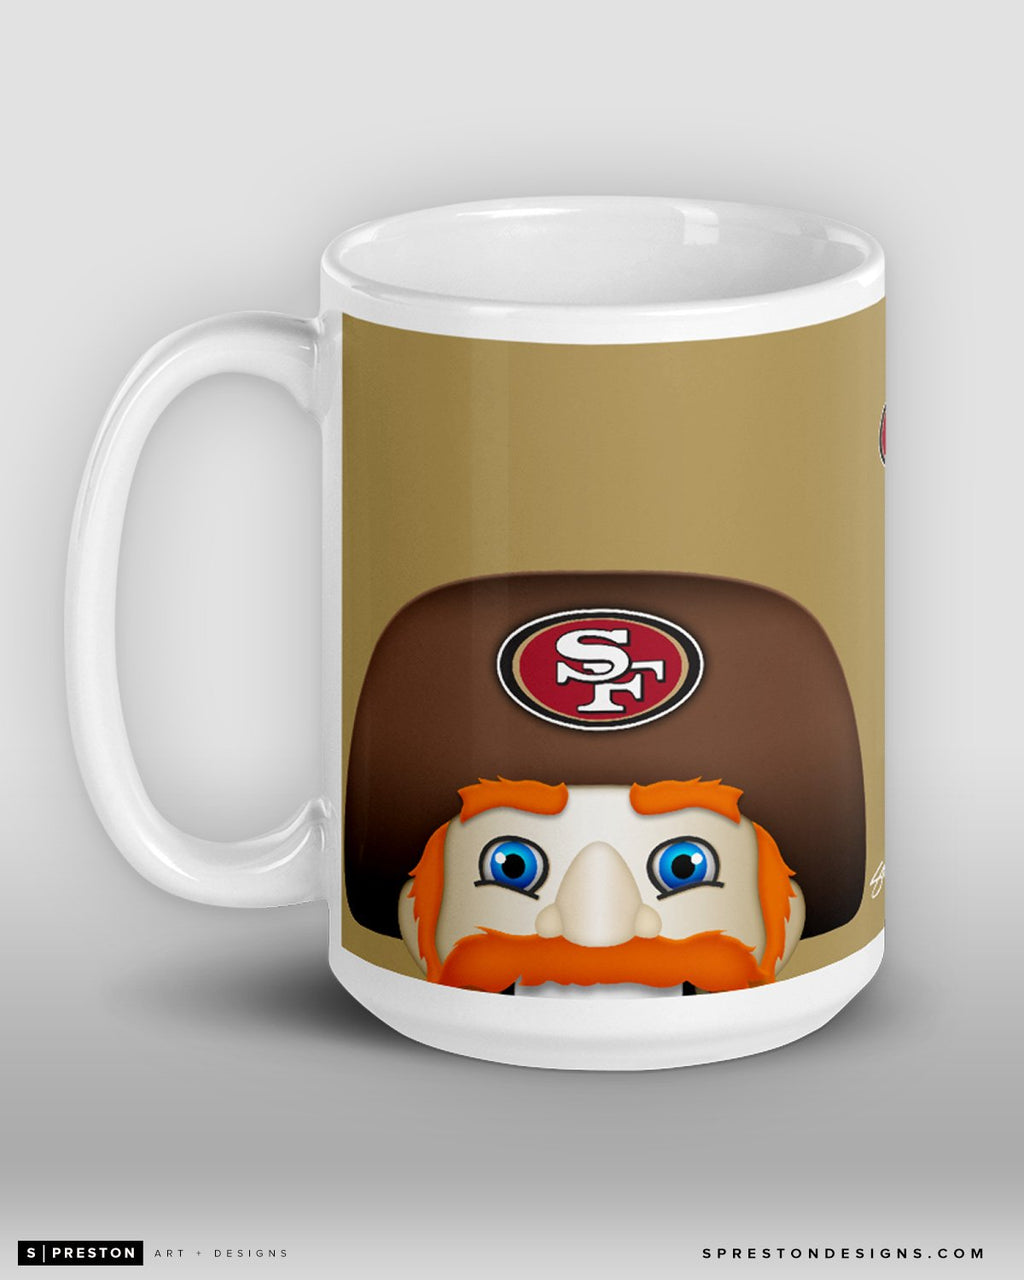 Minimalist Sourdough Sam Coffee Mug - NFL Licensed - San Francisco 49ers Mascot